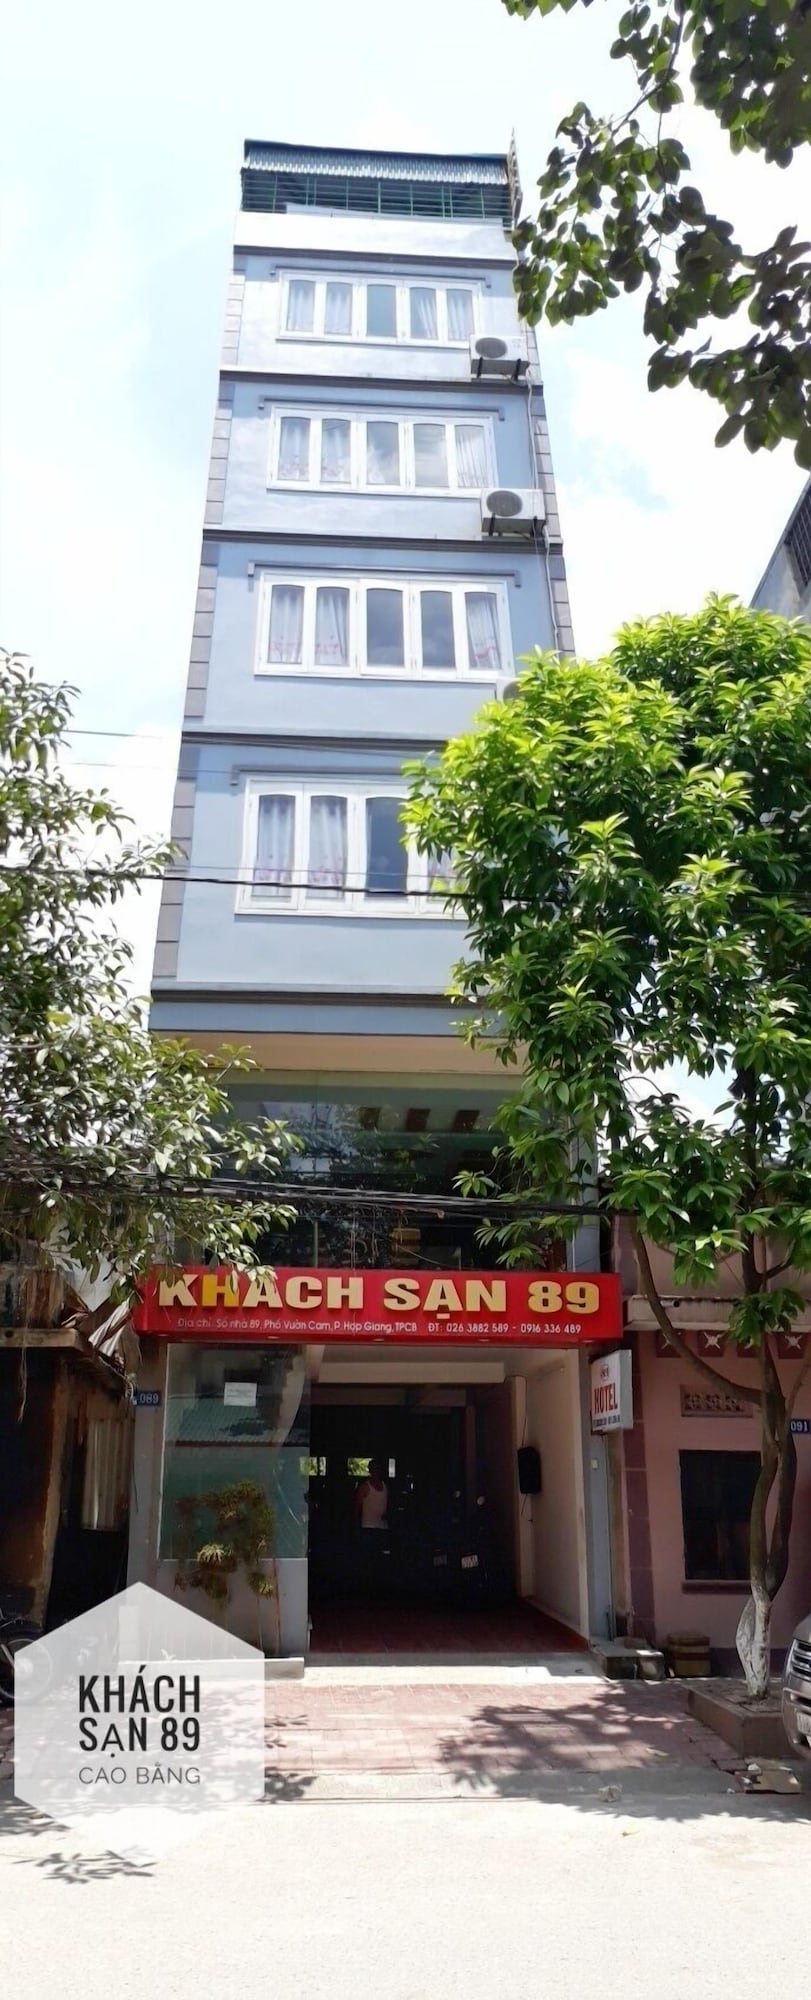 89 Hotel, Cao Bằng